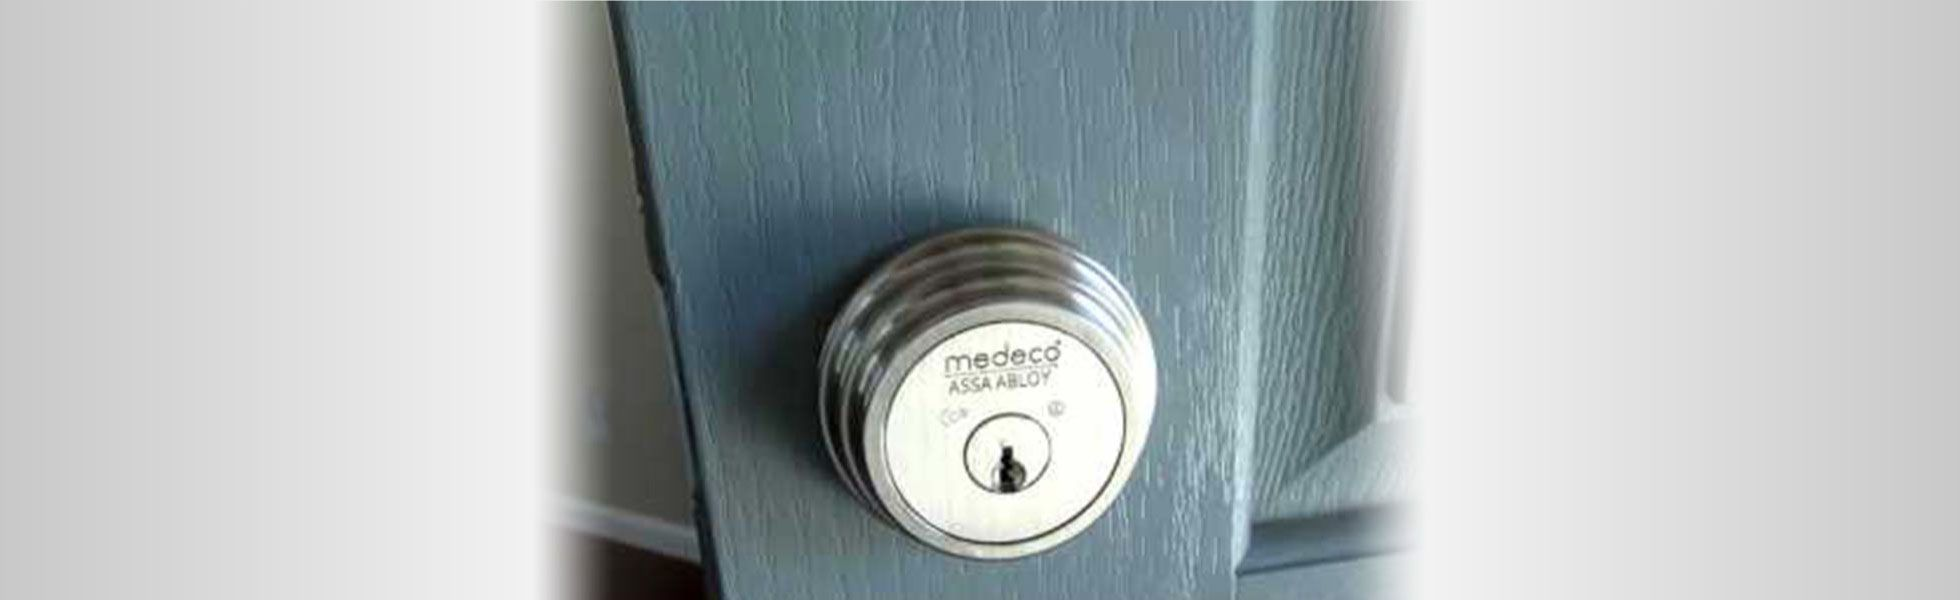 Medeco® Locks Manitoba | High Security Locks | Legal Locksmith